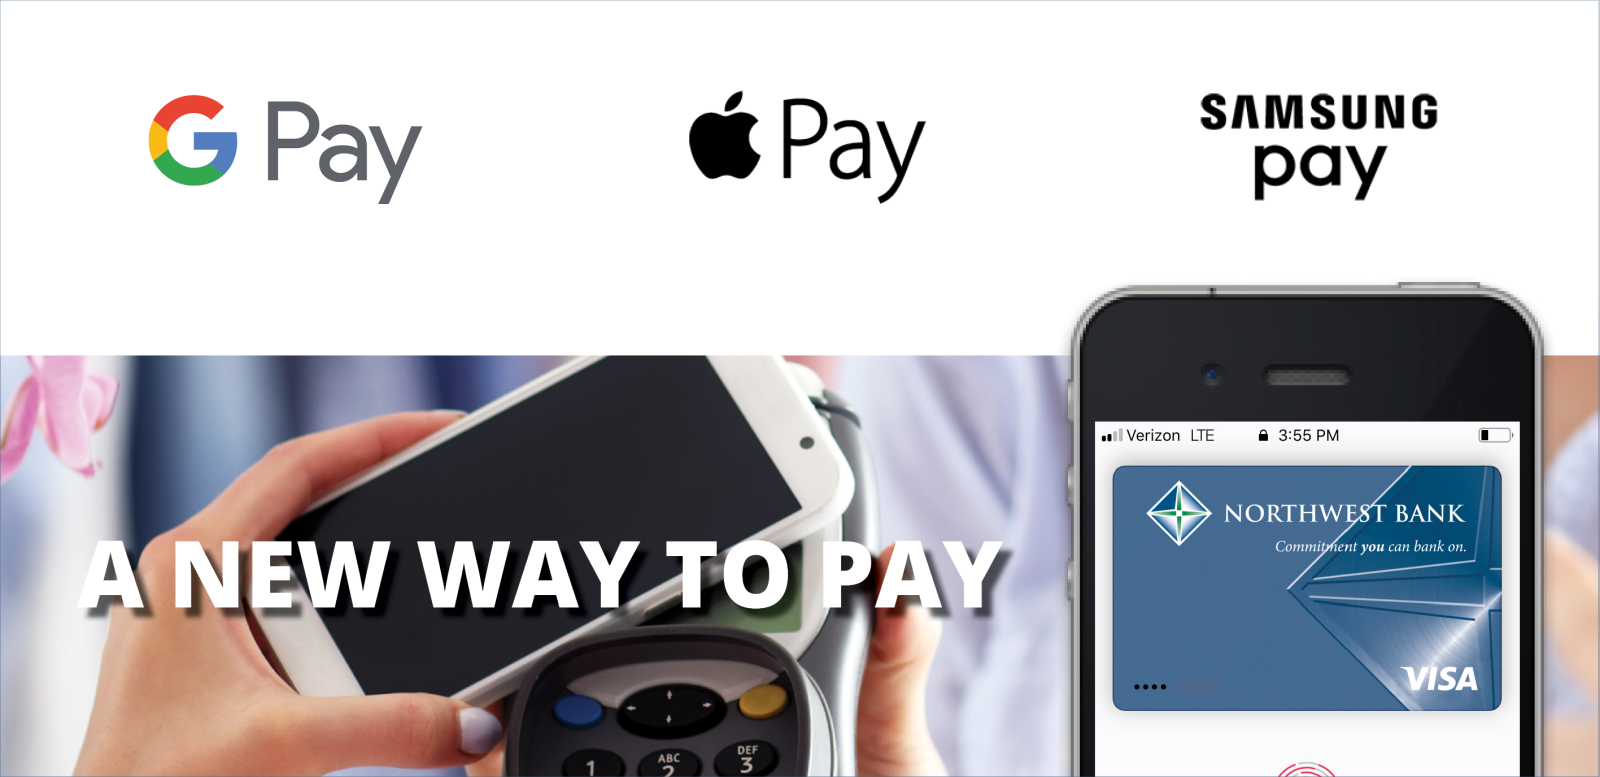 Image of mobile wallets: Google Pay, Apple Pay and Samsung Pay